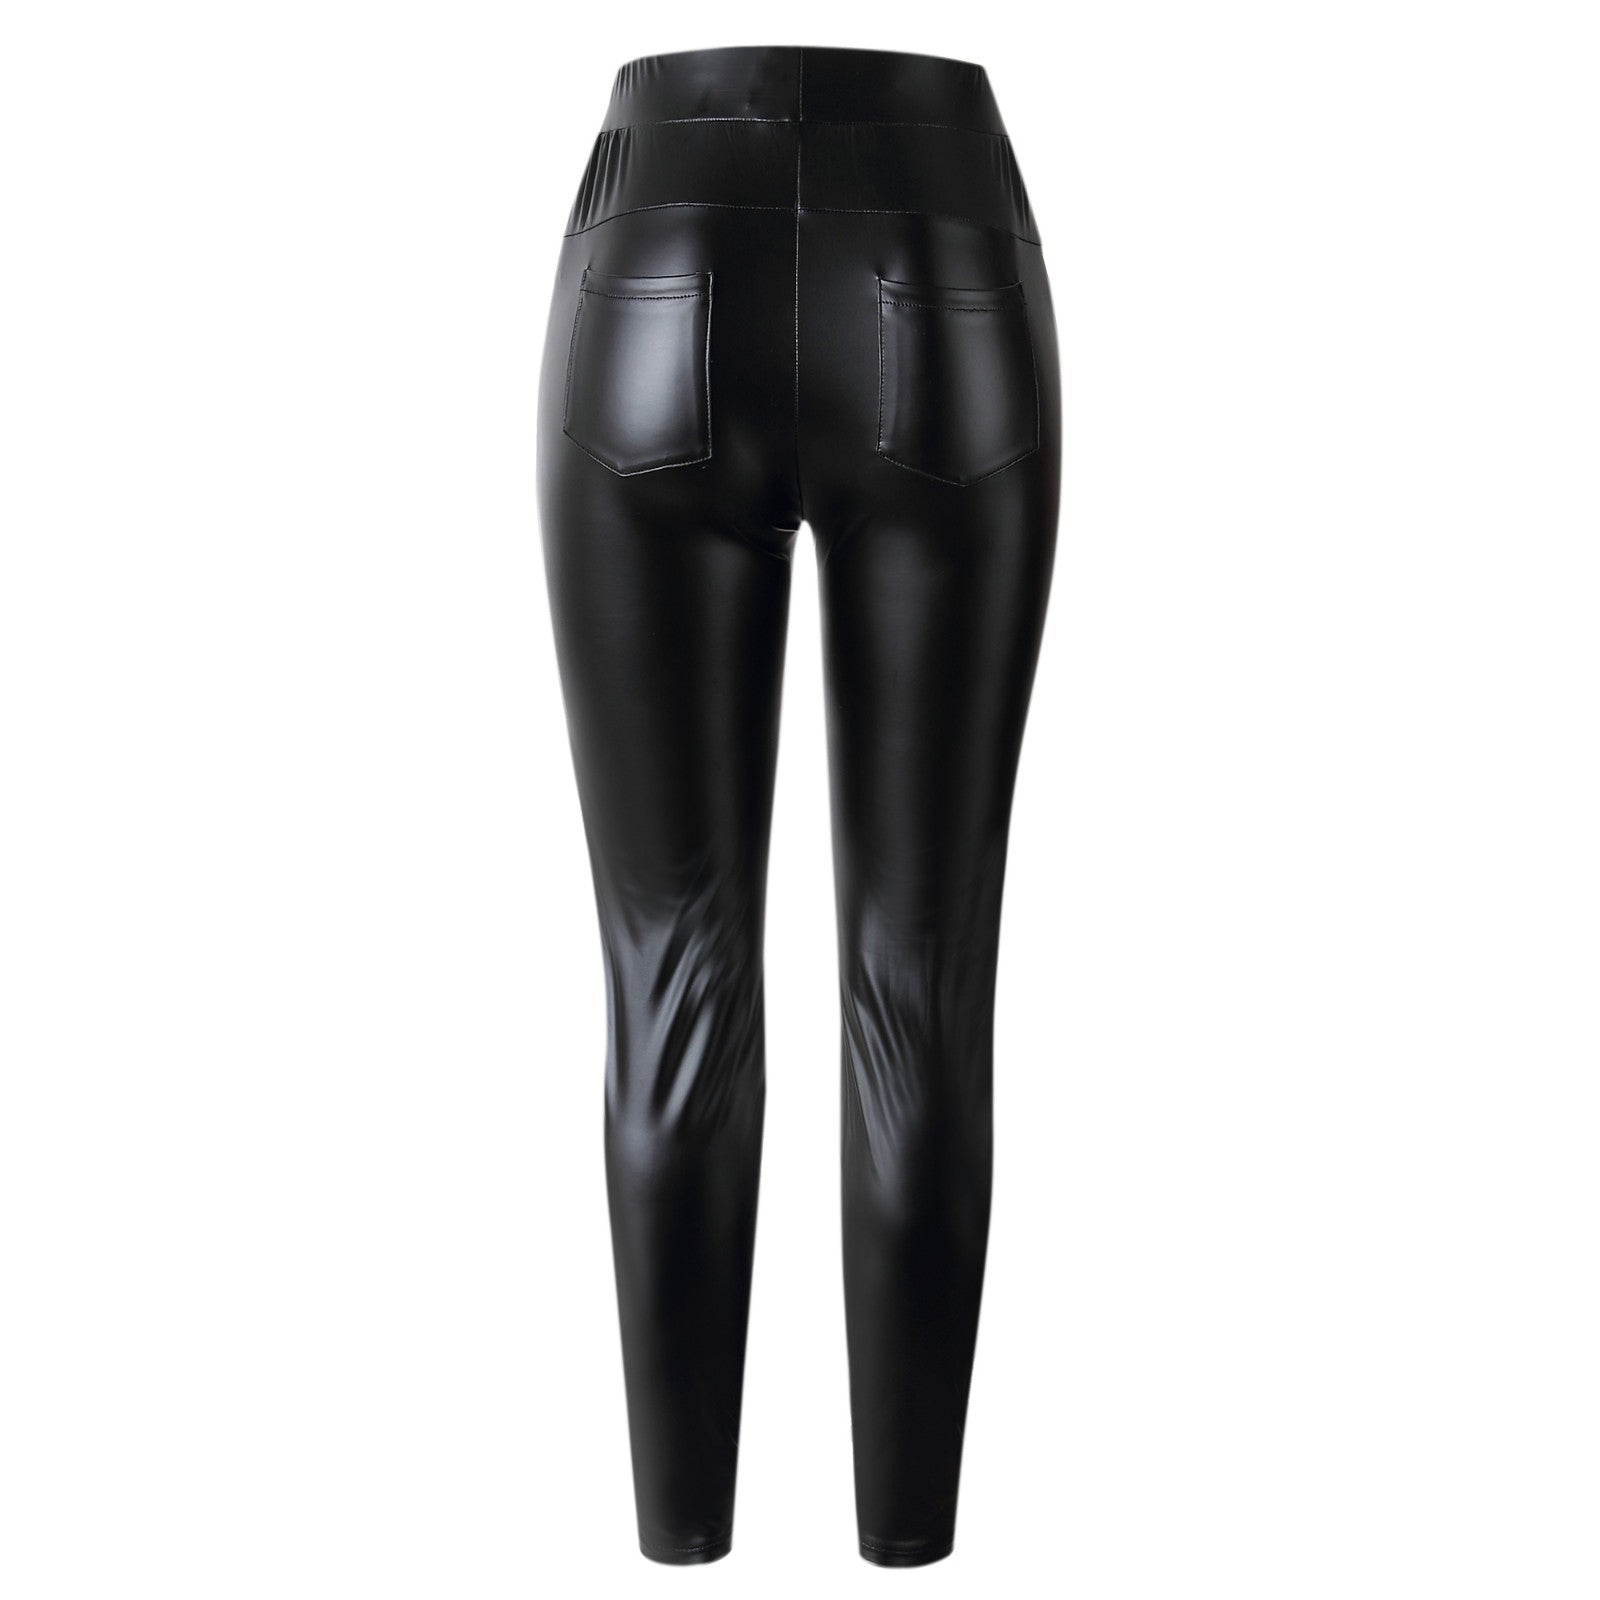 NEUTRALBLU SLIMFIT LEATHER PANTS WITH POCKETS  - NeutralBlu Genderless Gender Neutral Fashion Clothing Line